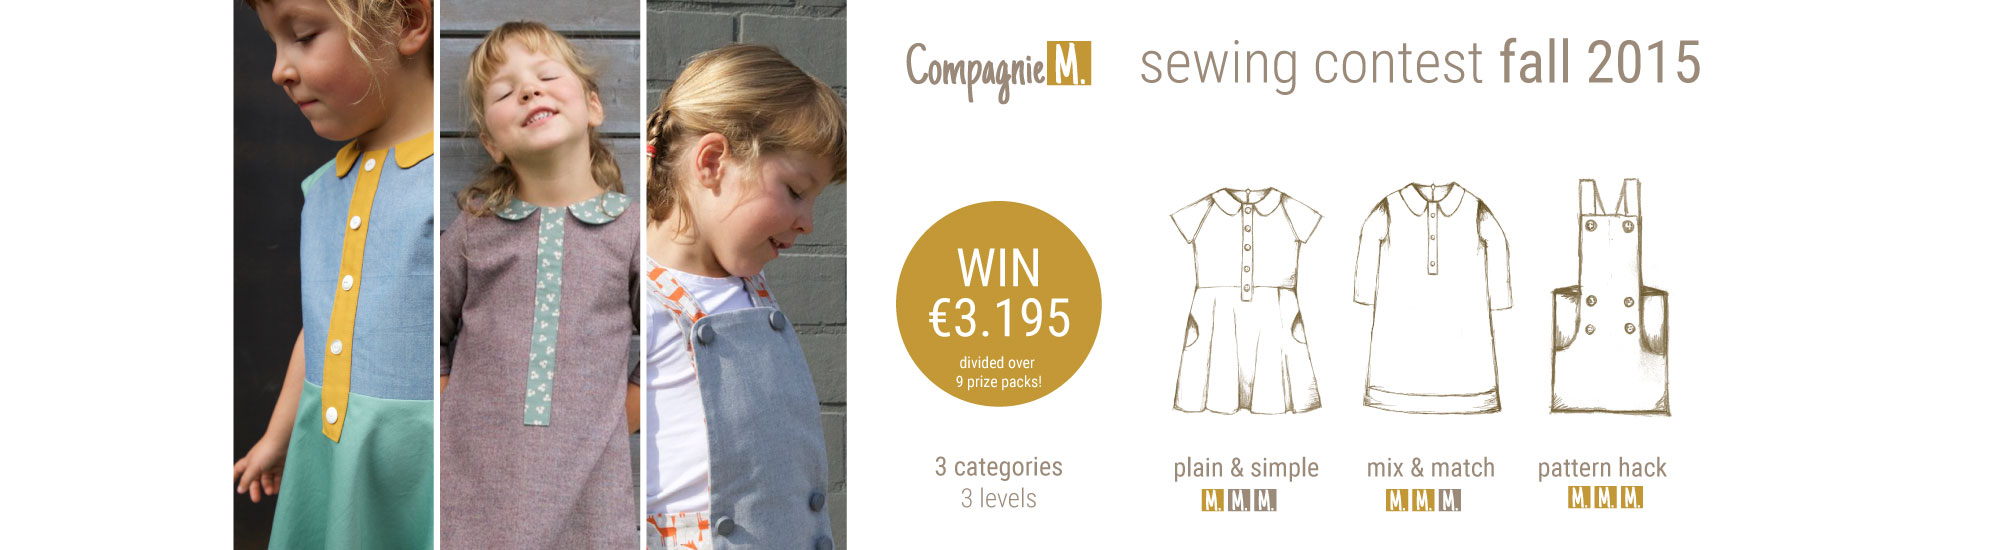 Compagnie M. sewing contest fall 2015: 3 categories (levels), 9 prize packs worth 3.195 euro in total!